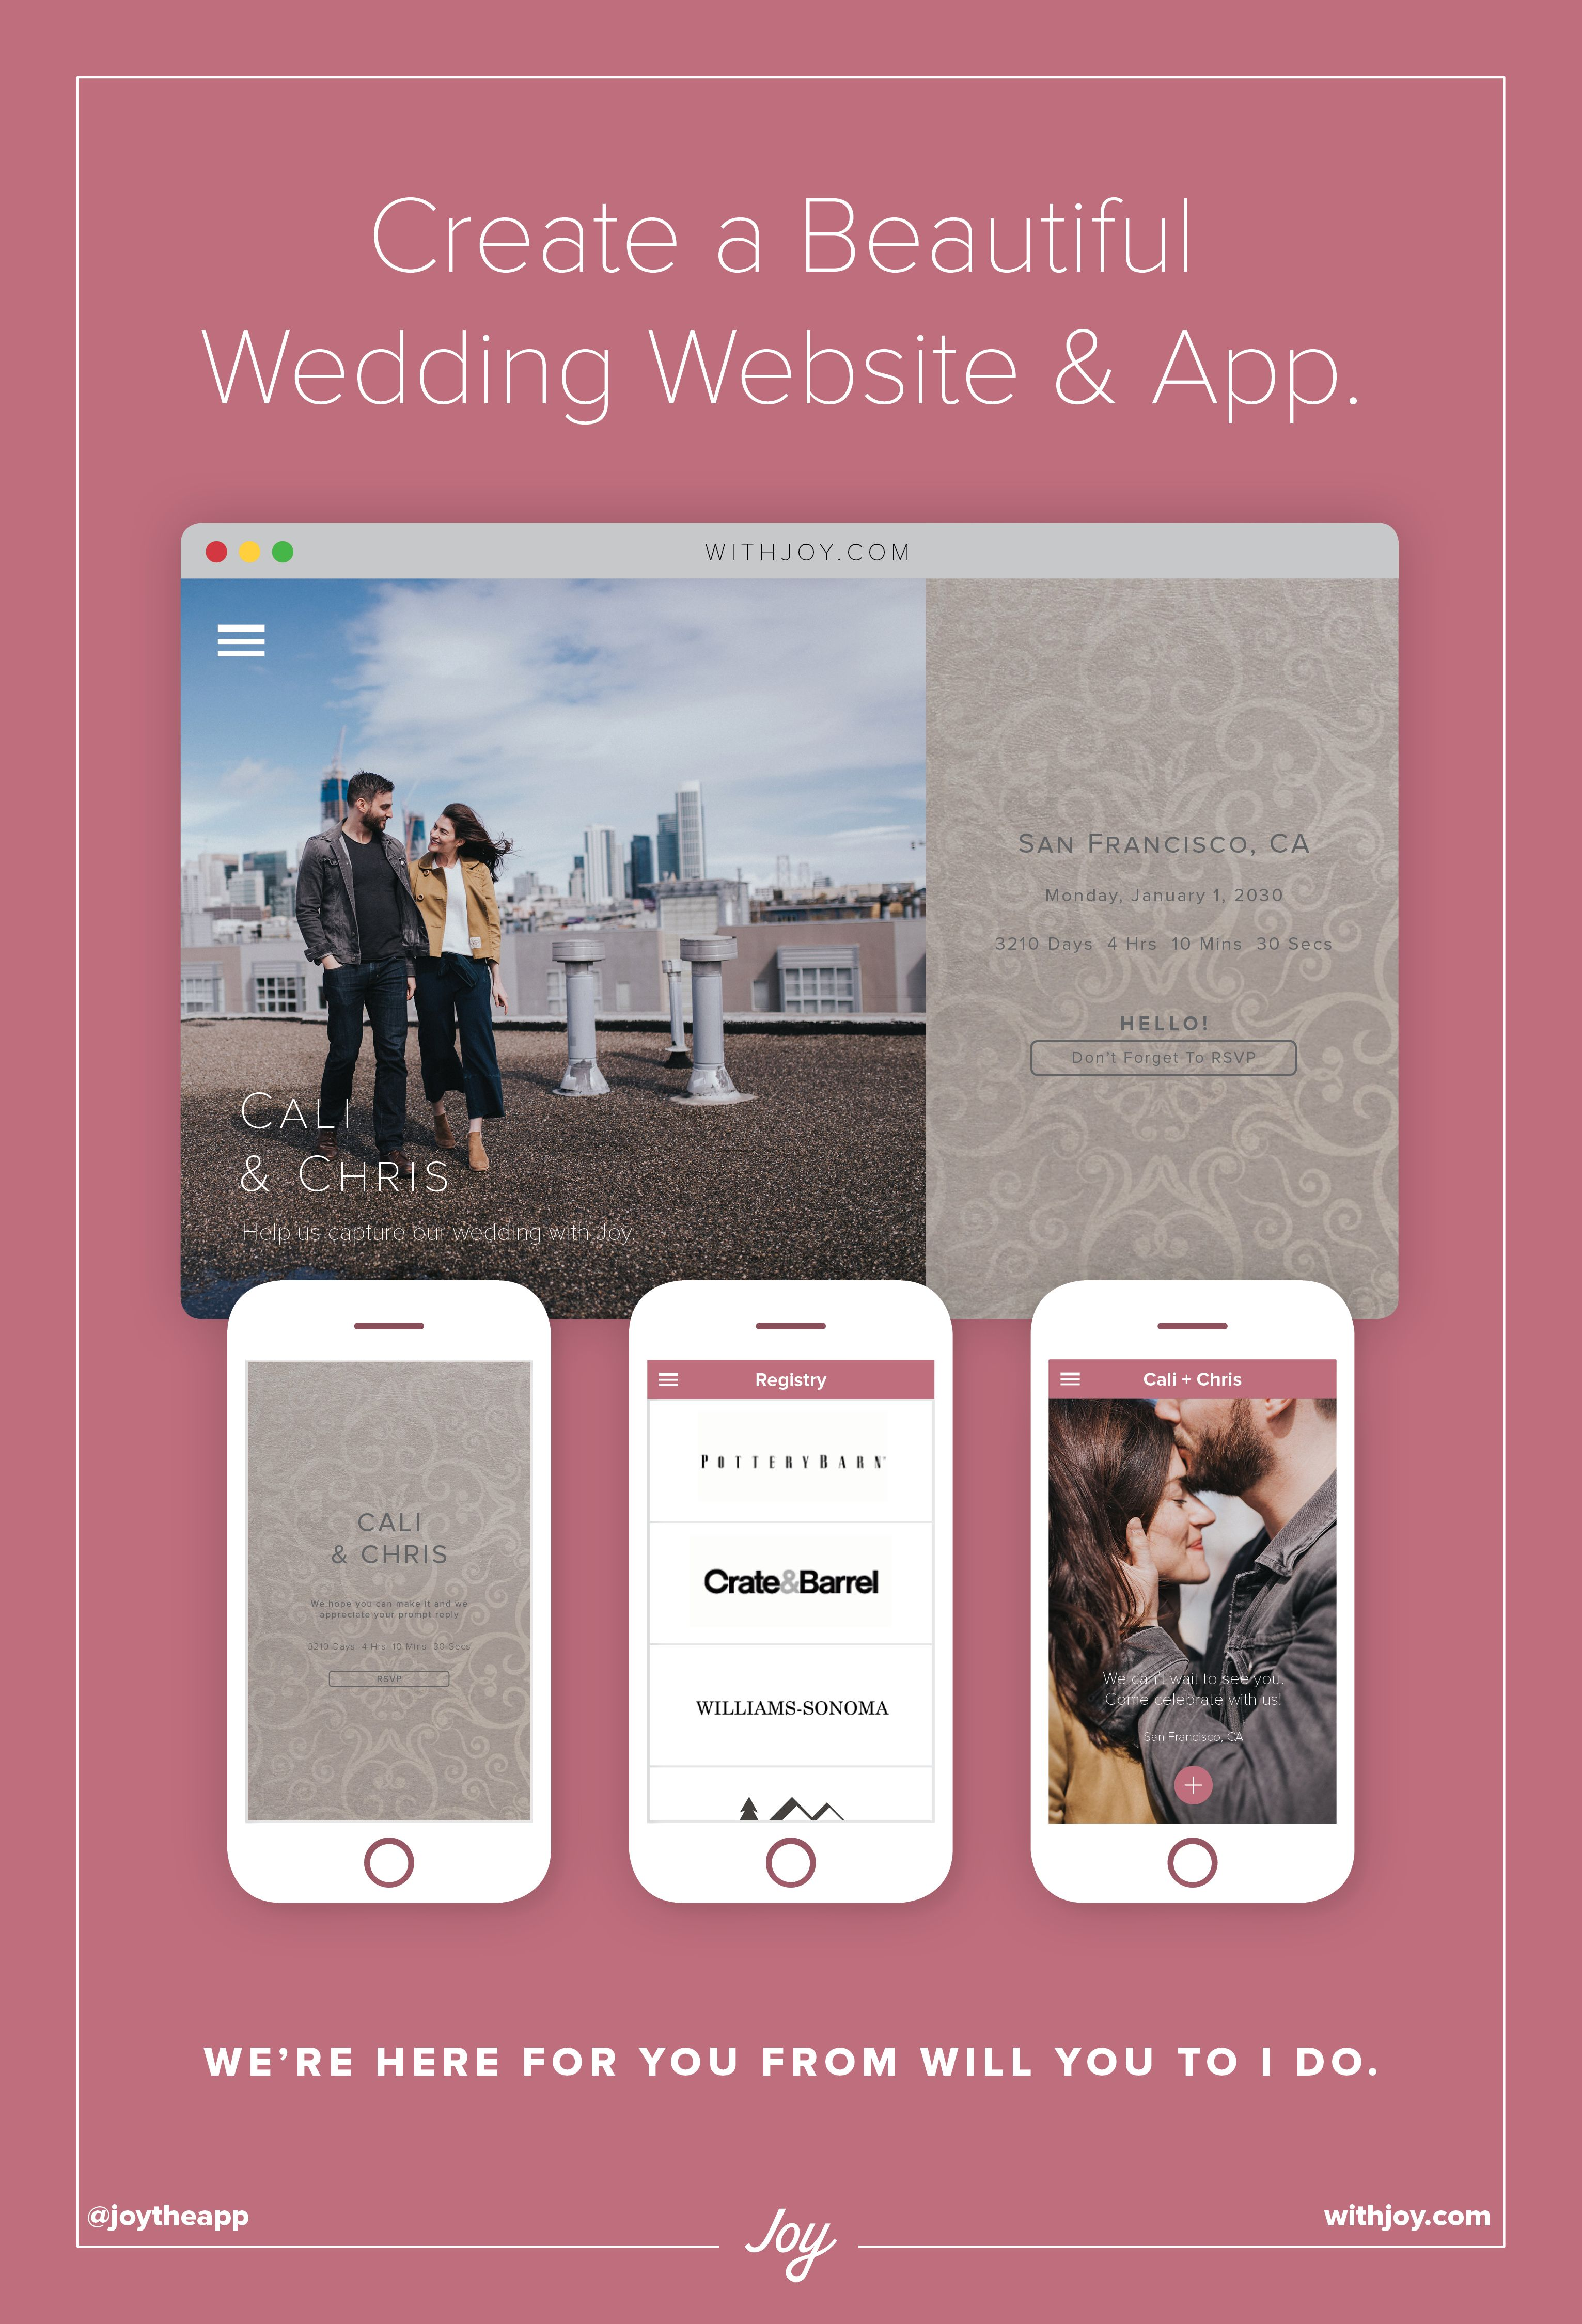 A free wedding website and app to invite guests, manages